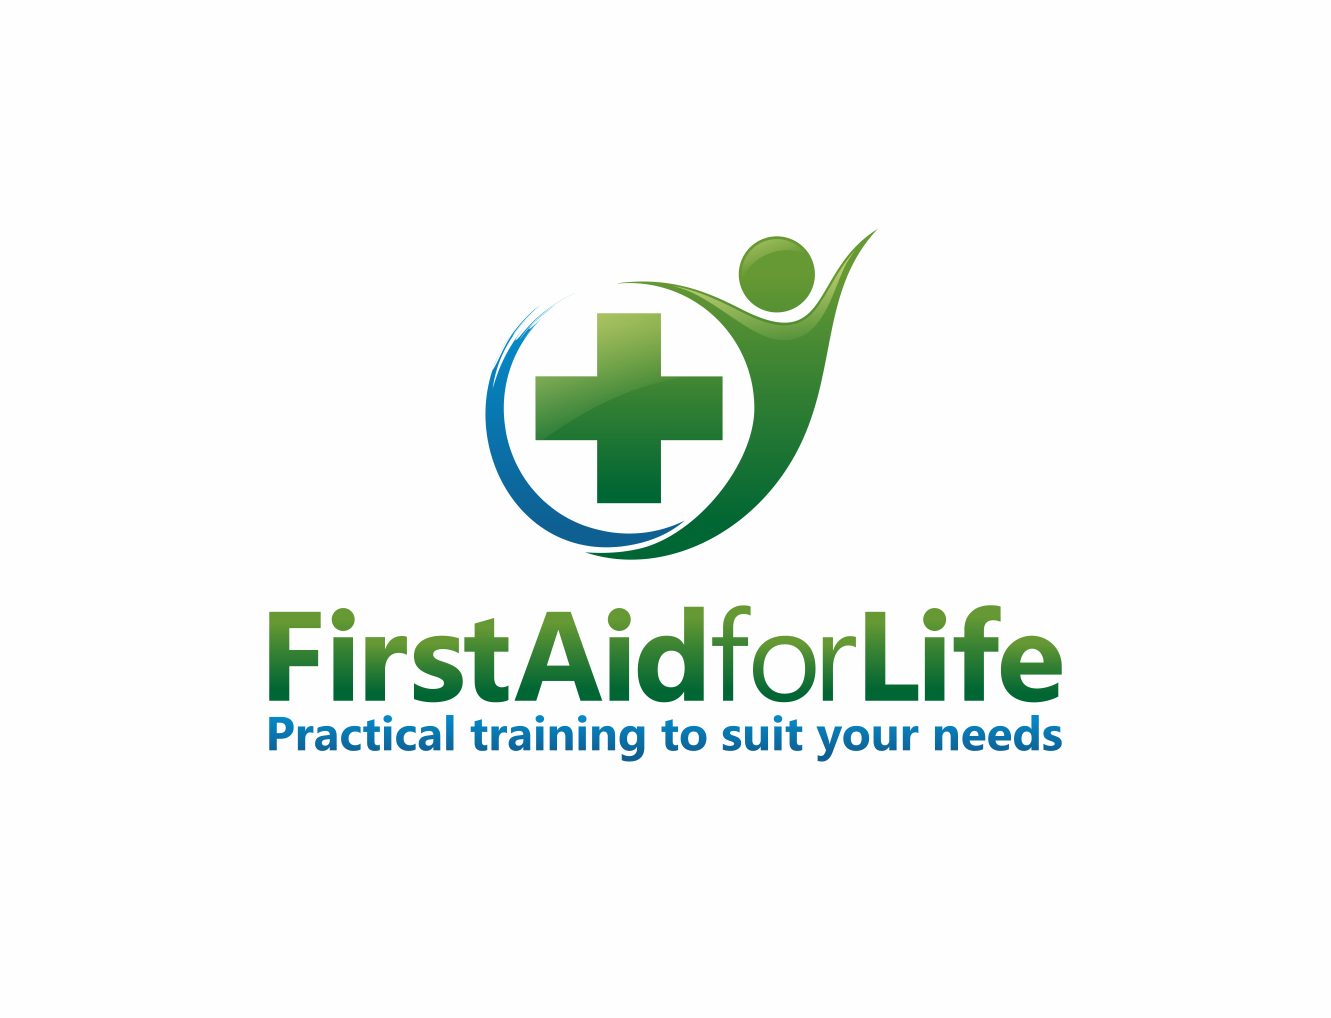 Please create the next logo for First Aid for Life - a First Aid Training company that really cares